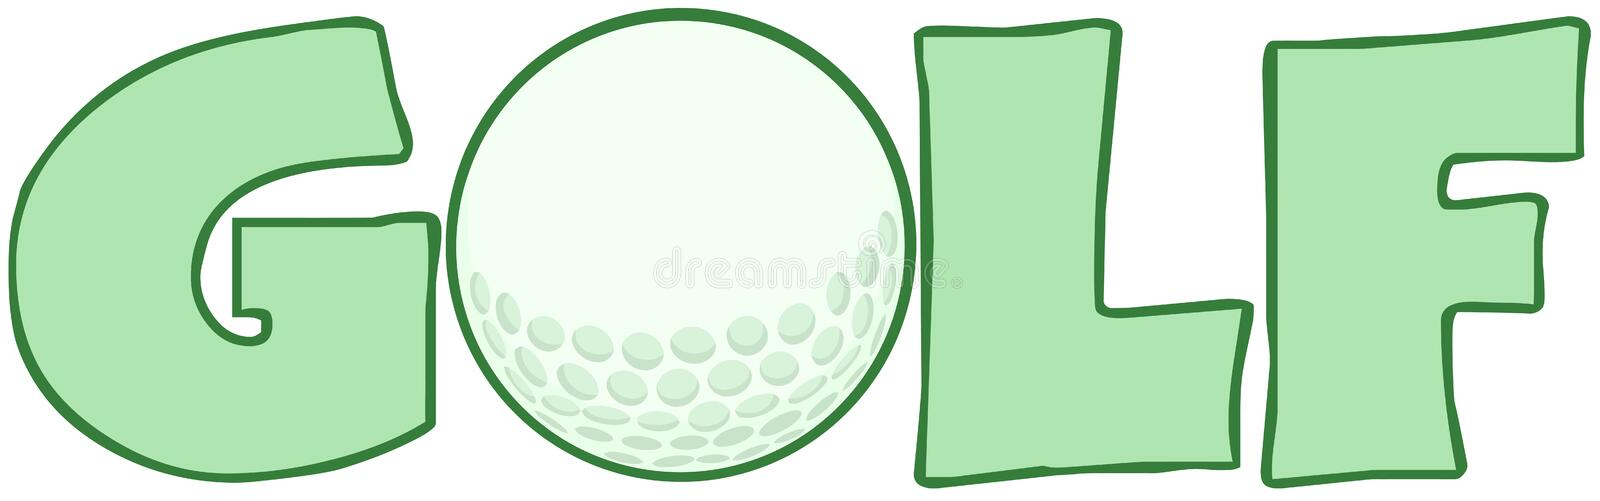 Golf Text With Golf Ball royalty free illustration